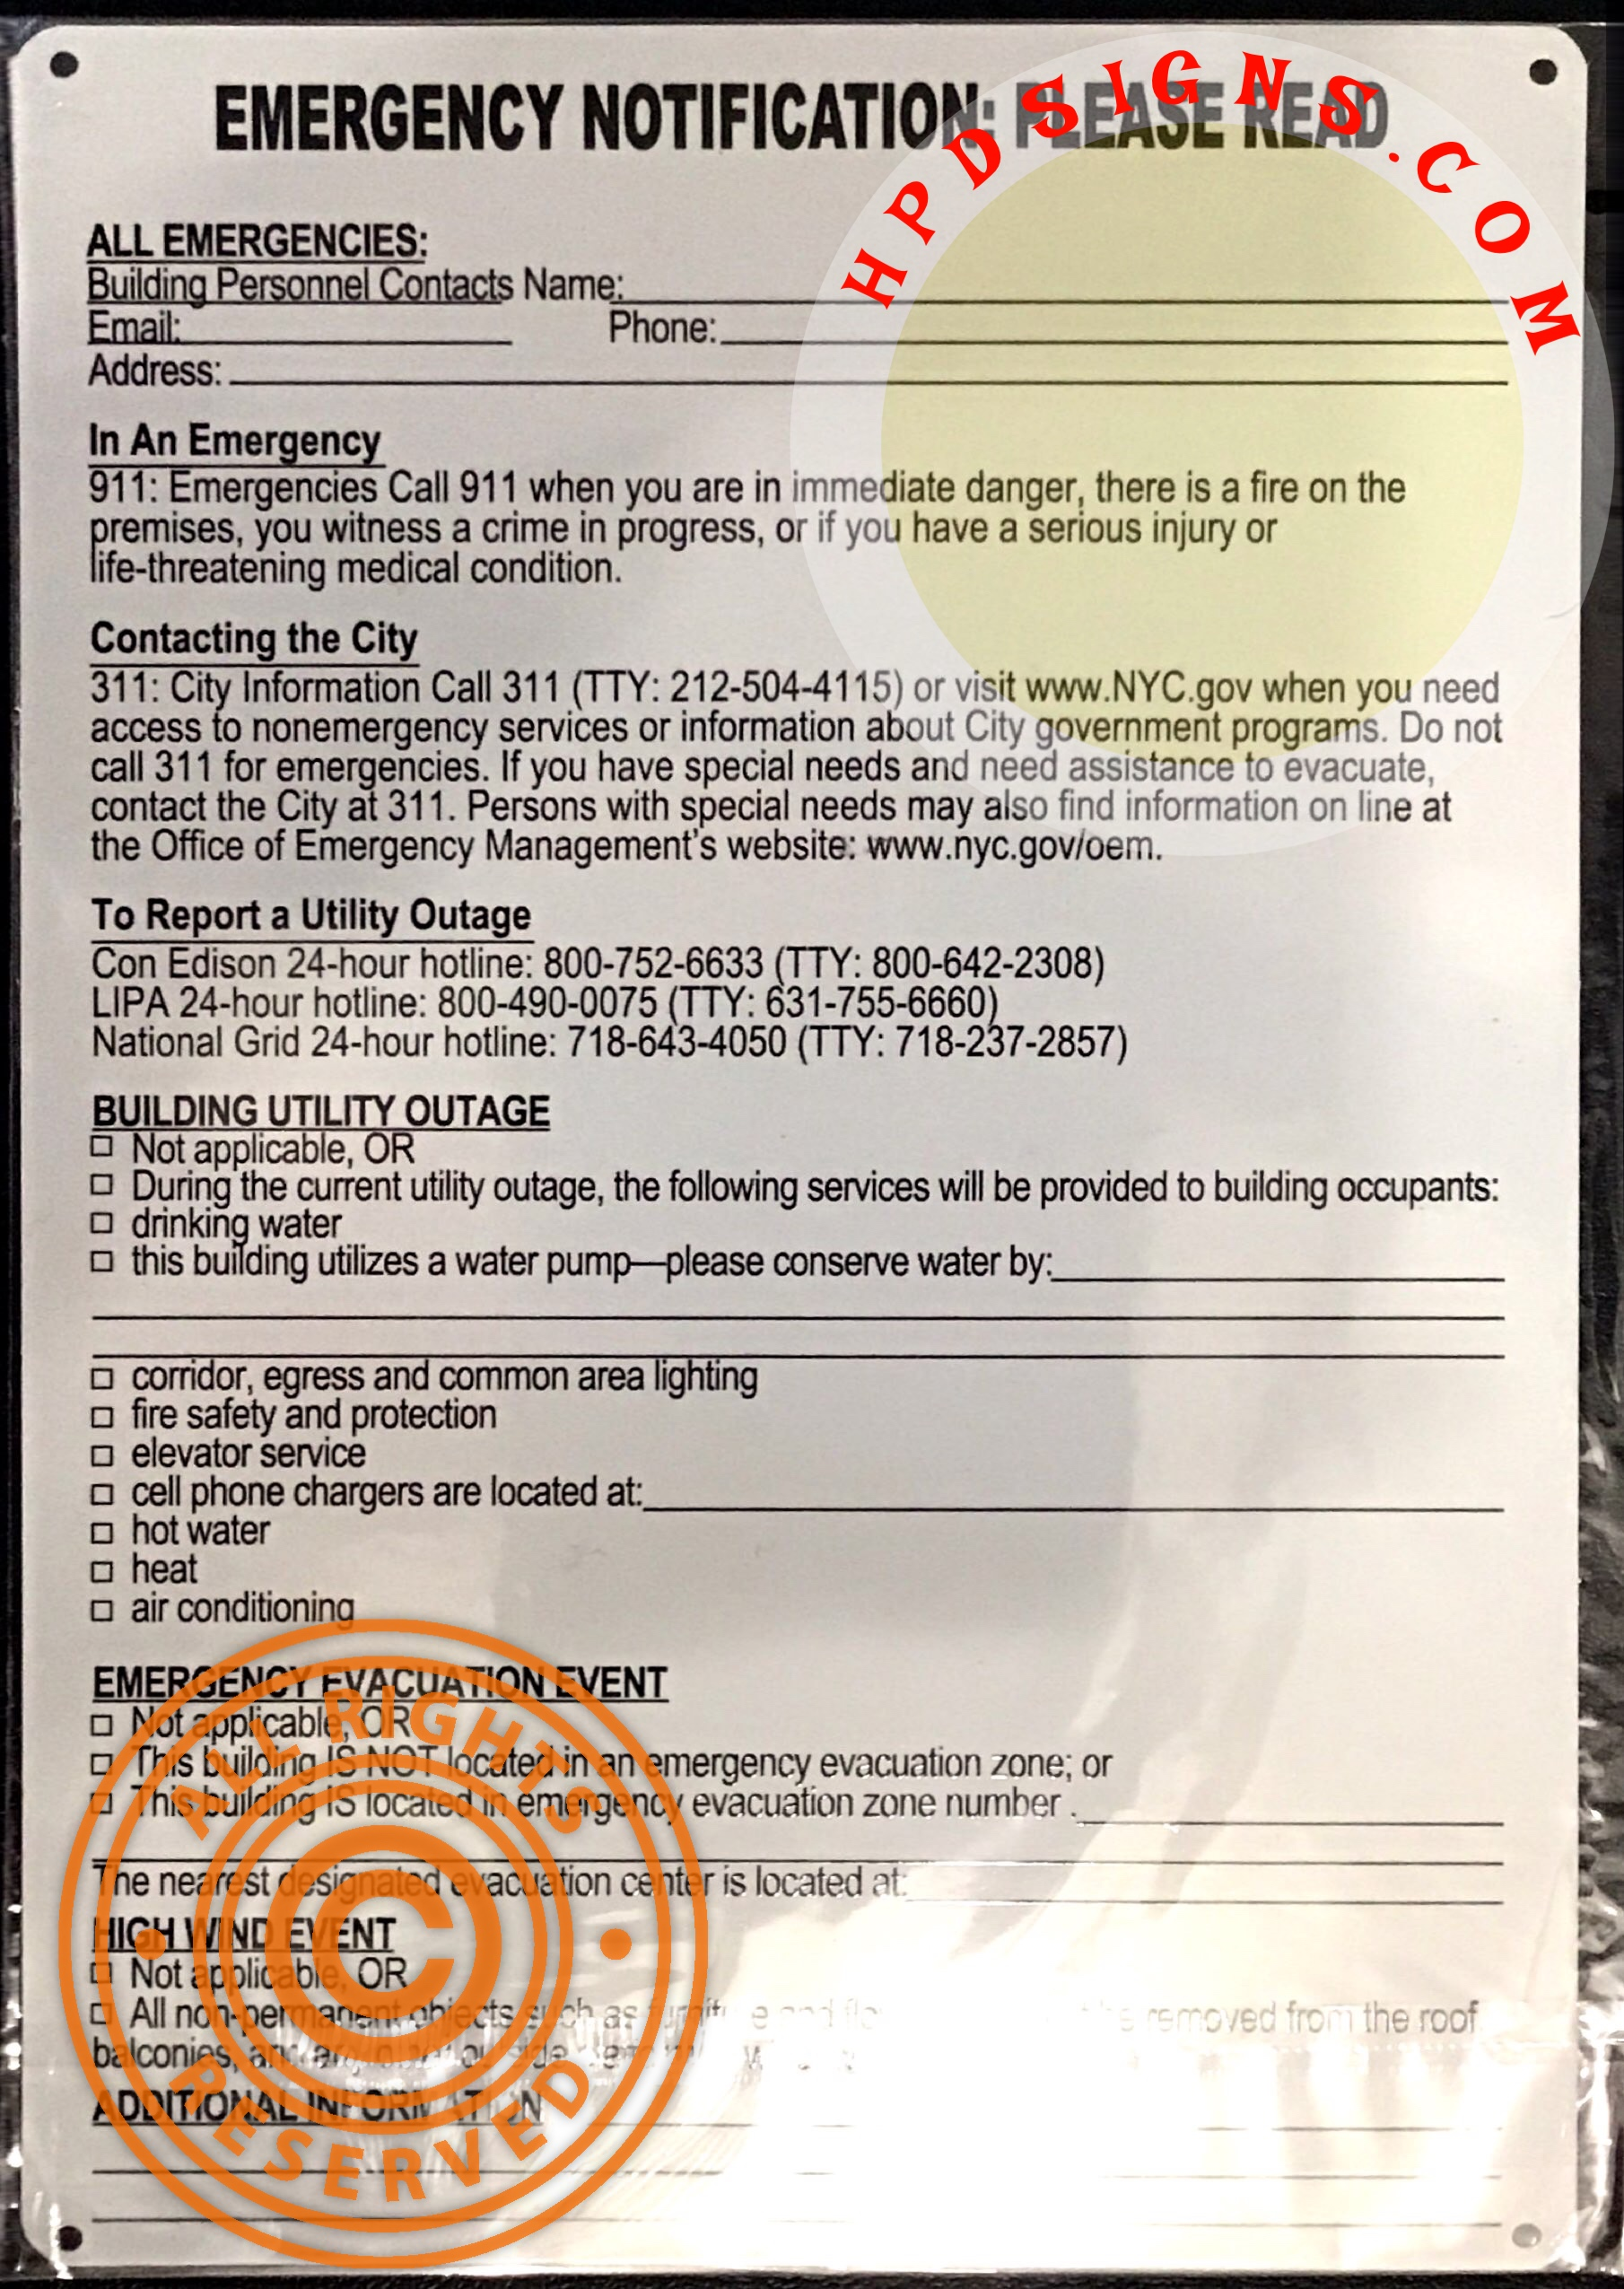 emergency-notificationnotice-hpd-nyc-3-.jpg